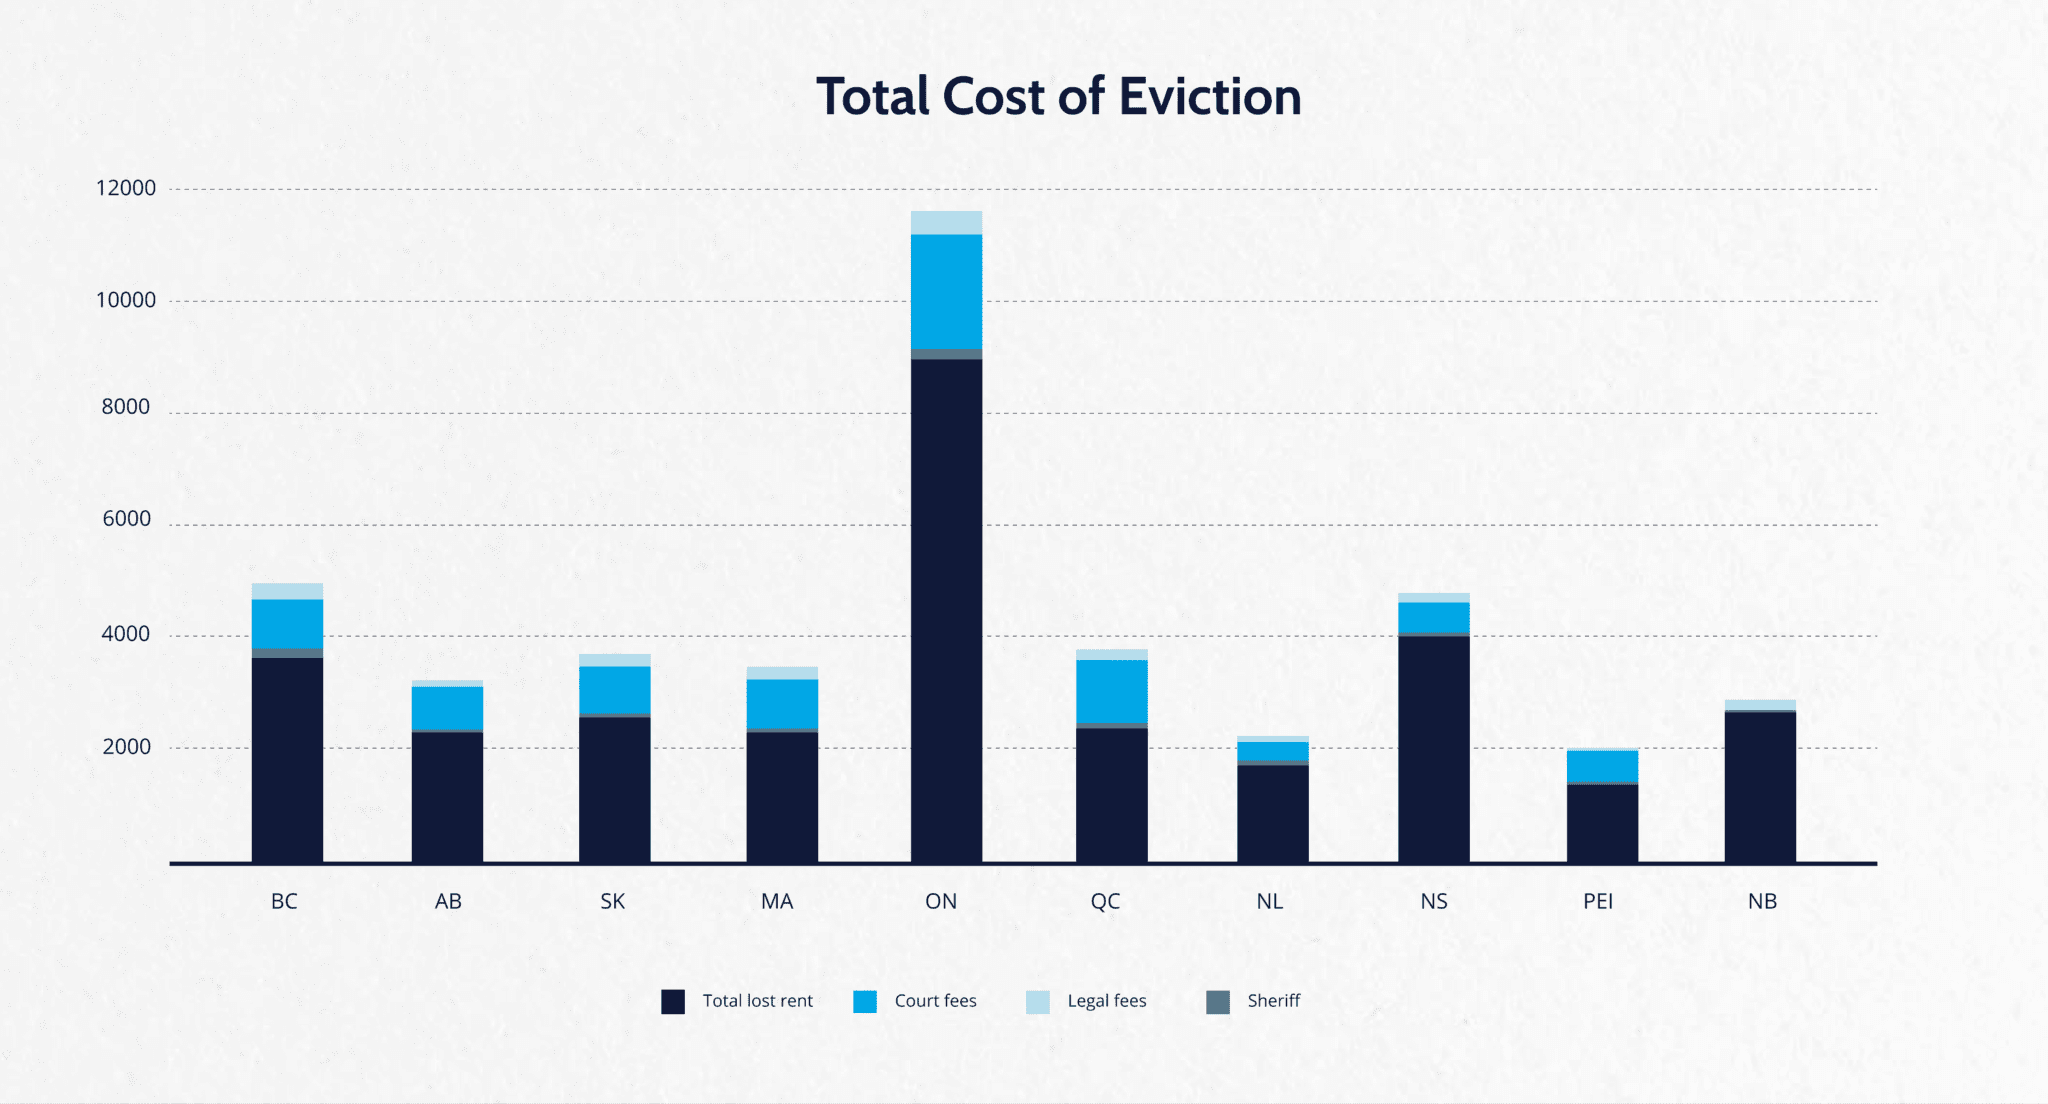 Total Cost of Eviction by Province